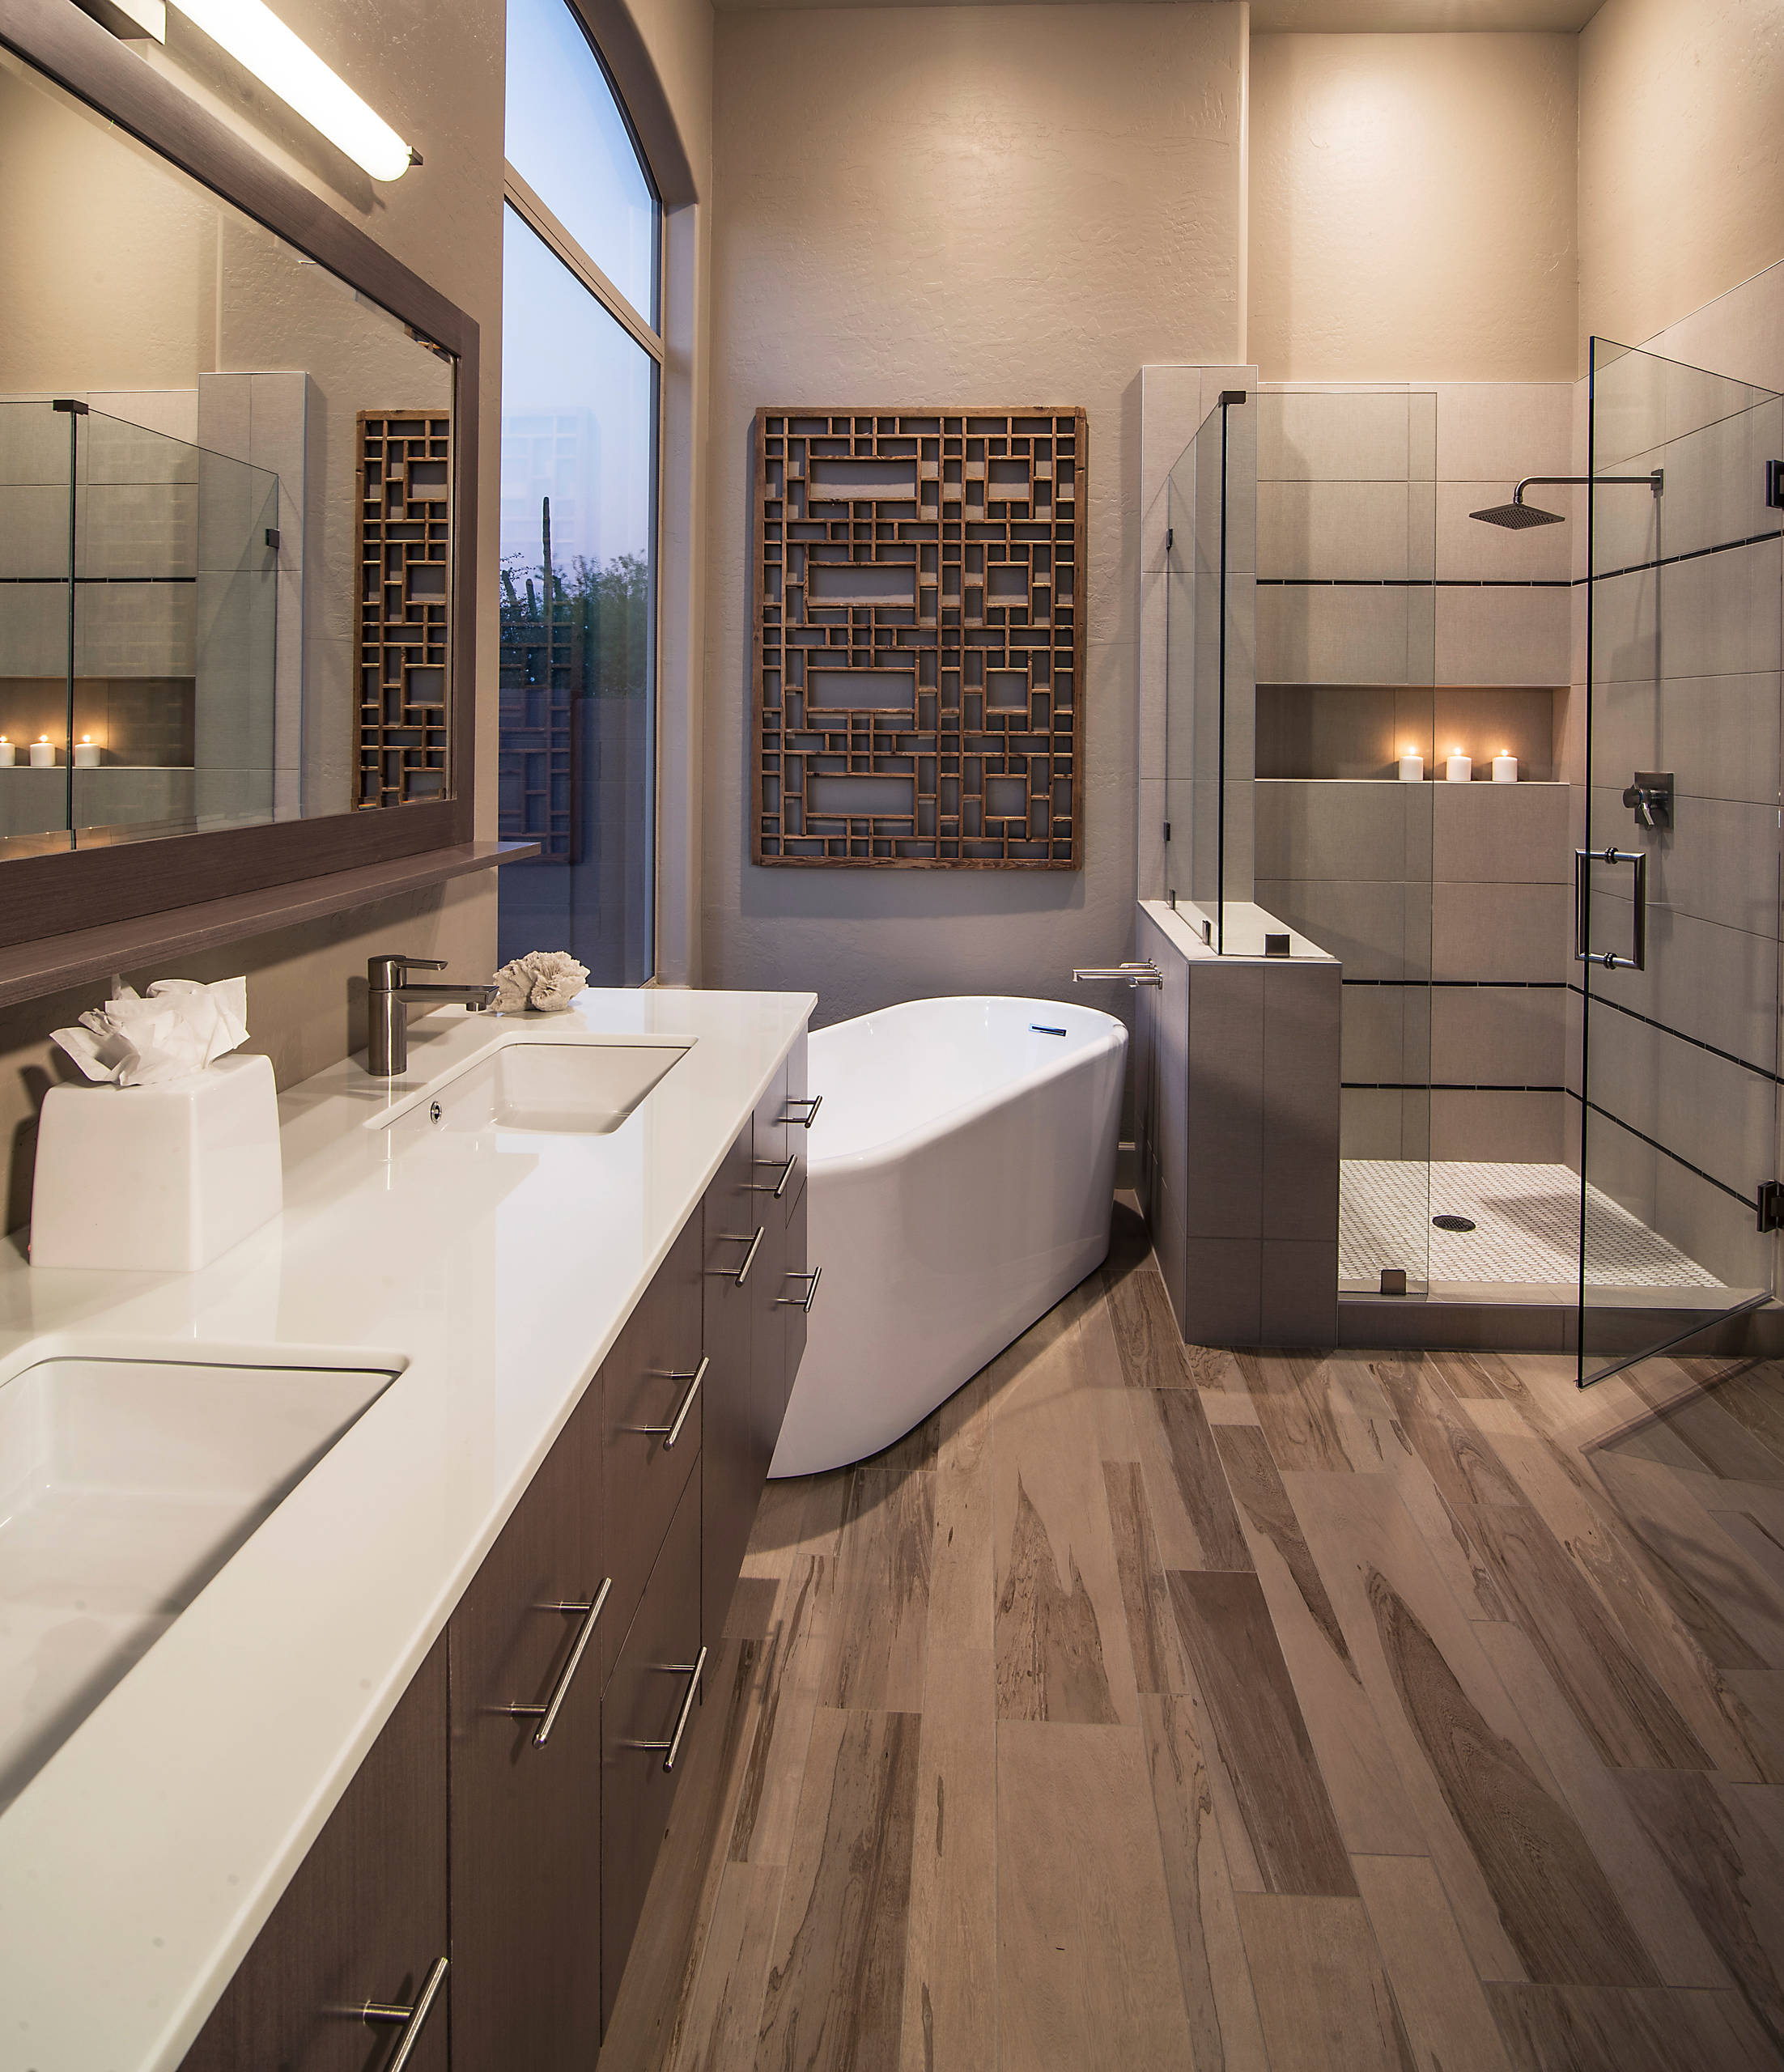 75 Beautiful Bathroom With Brown Cabinets Pictures Ideas March 2021 Houzz